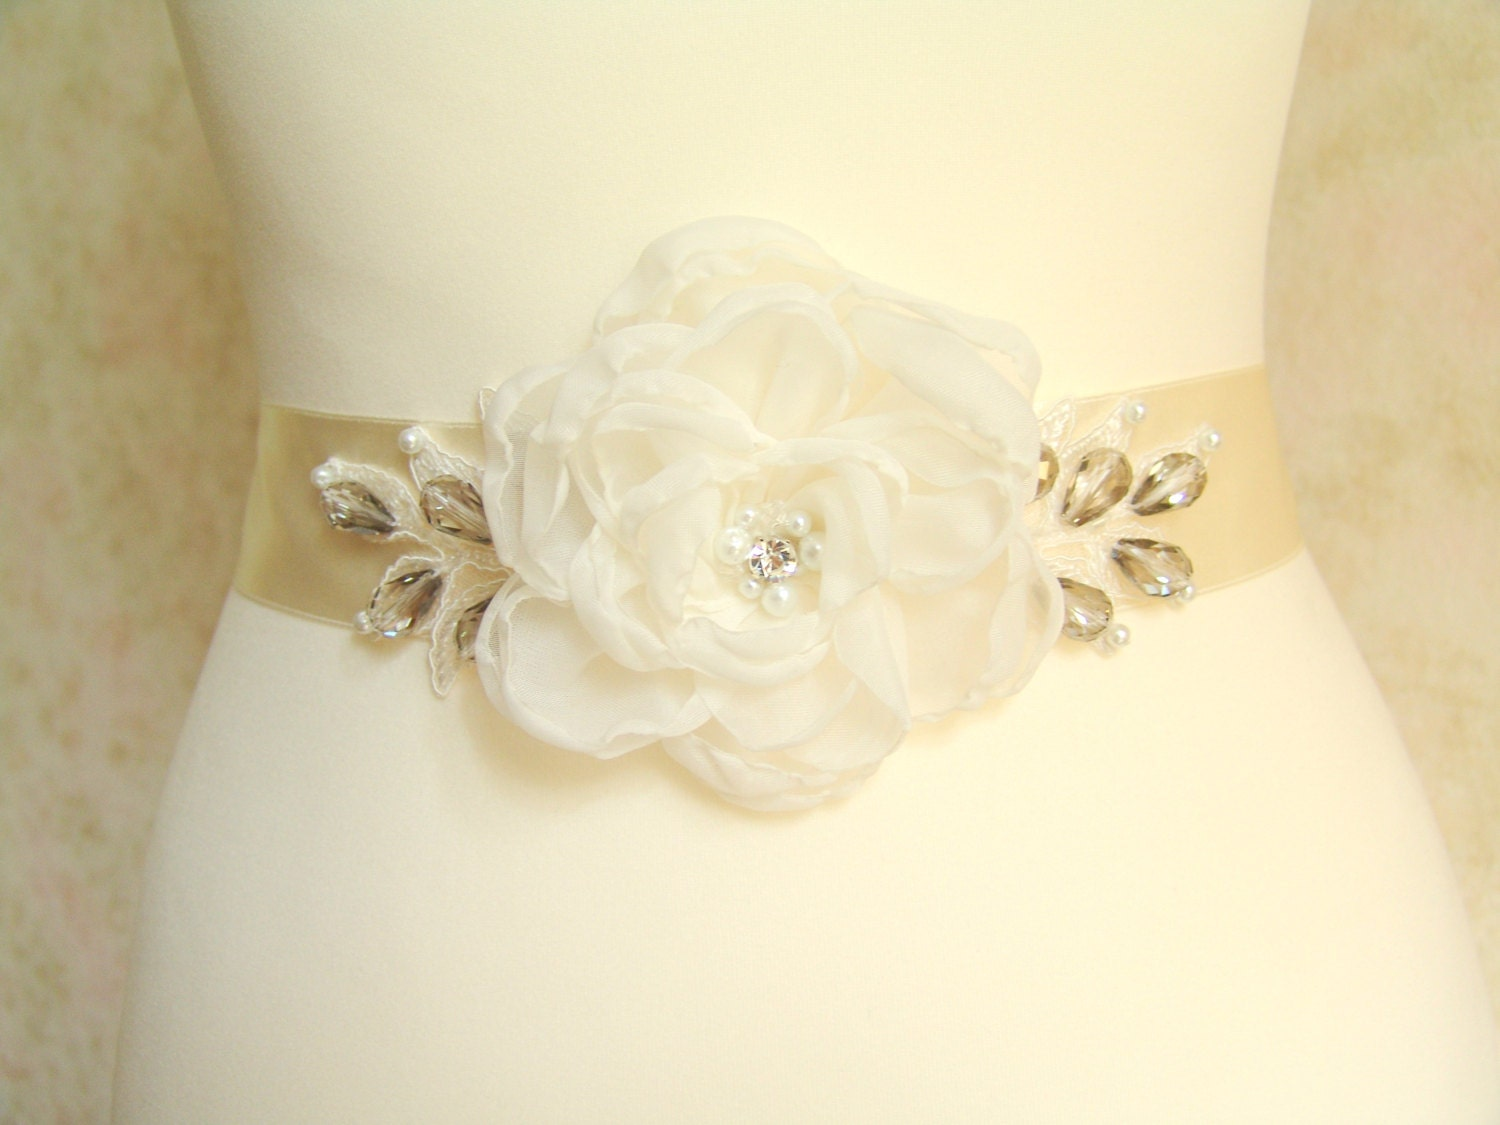 Flower Sash Ivory Bridal Sash Wedding Dress Sash Lace Belt f